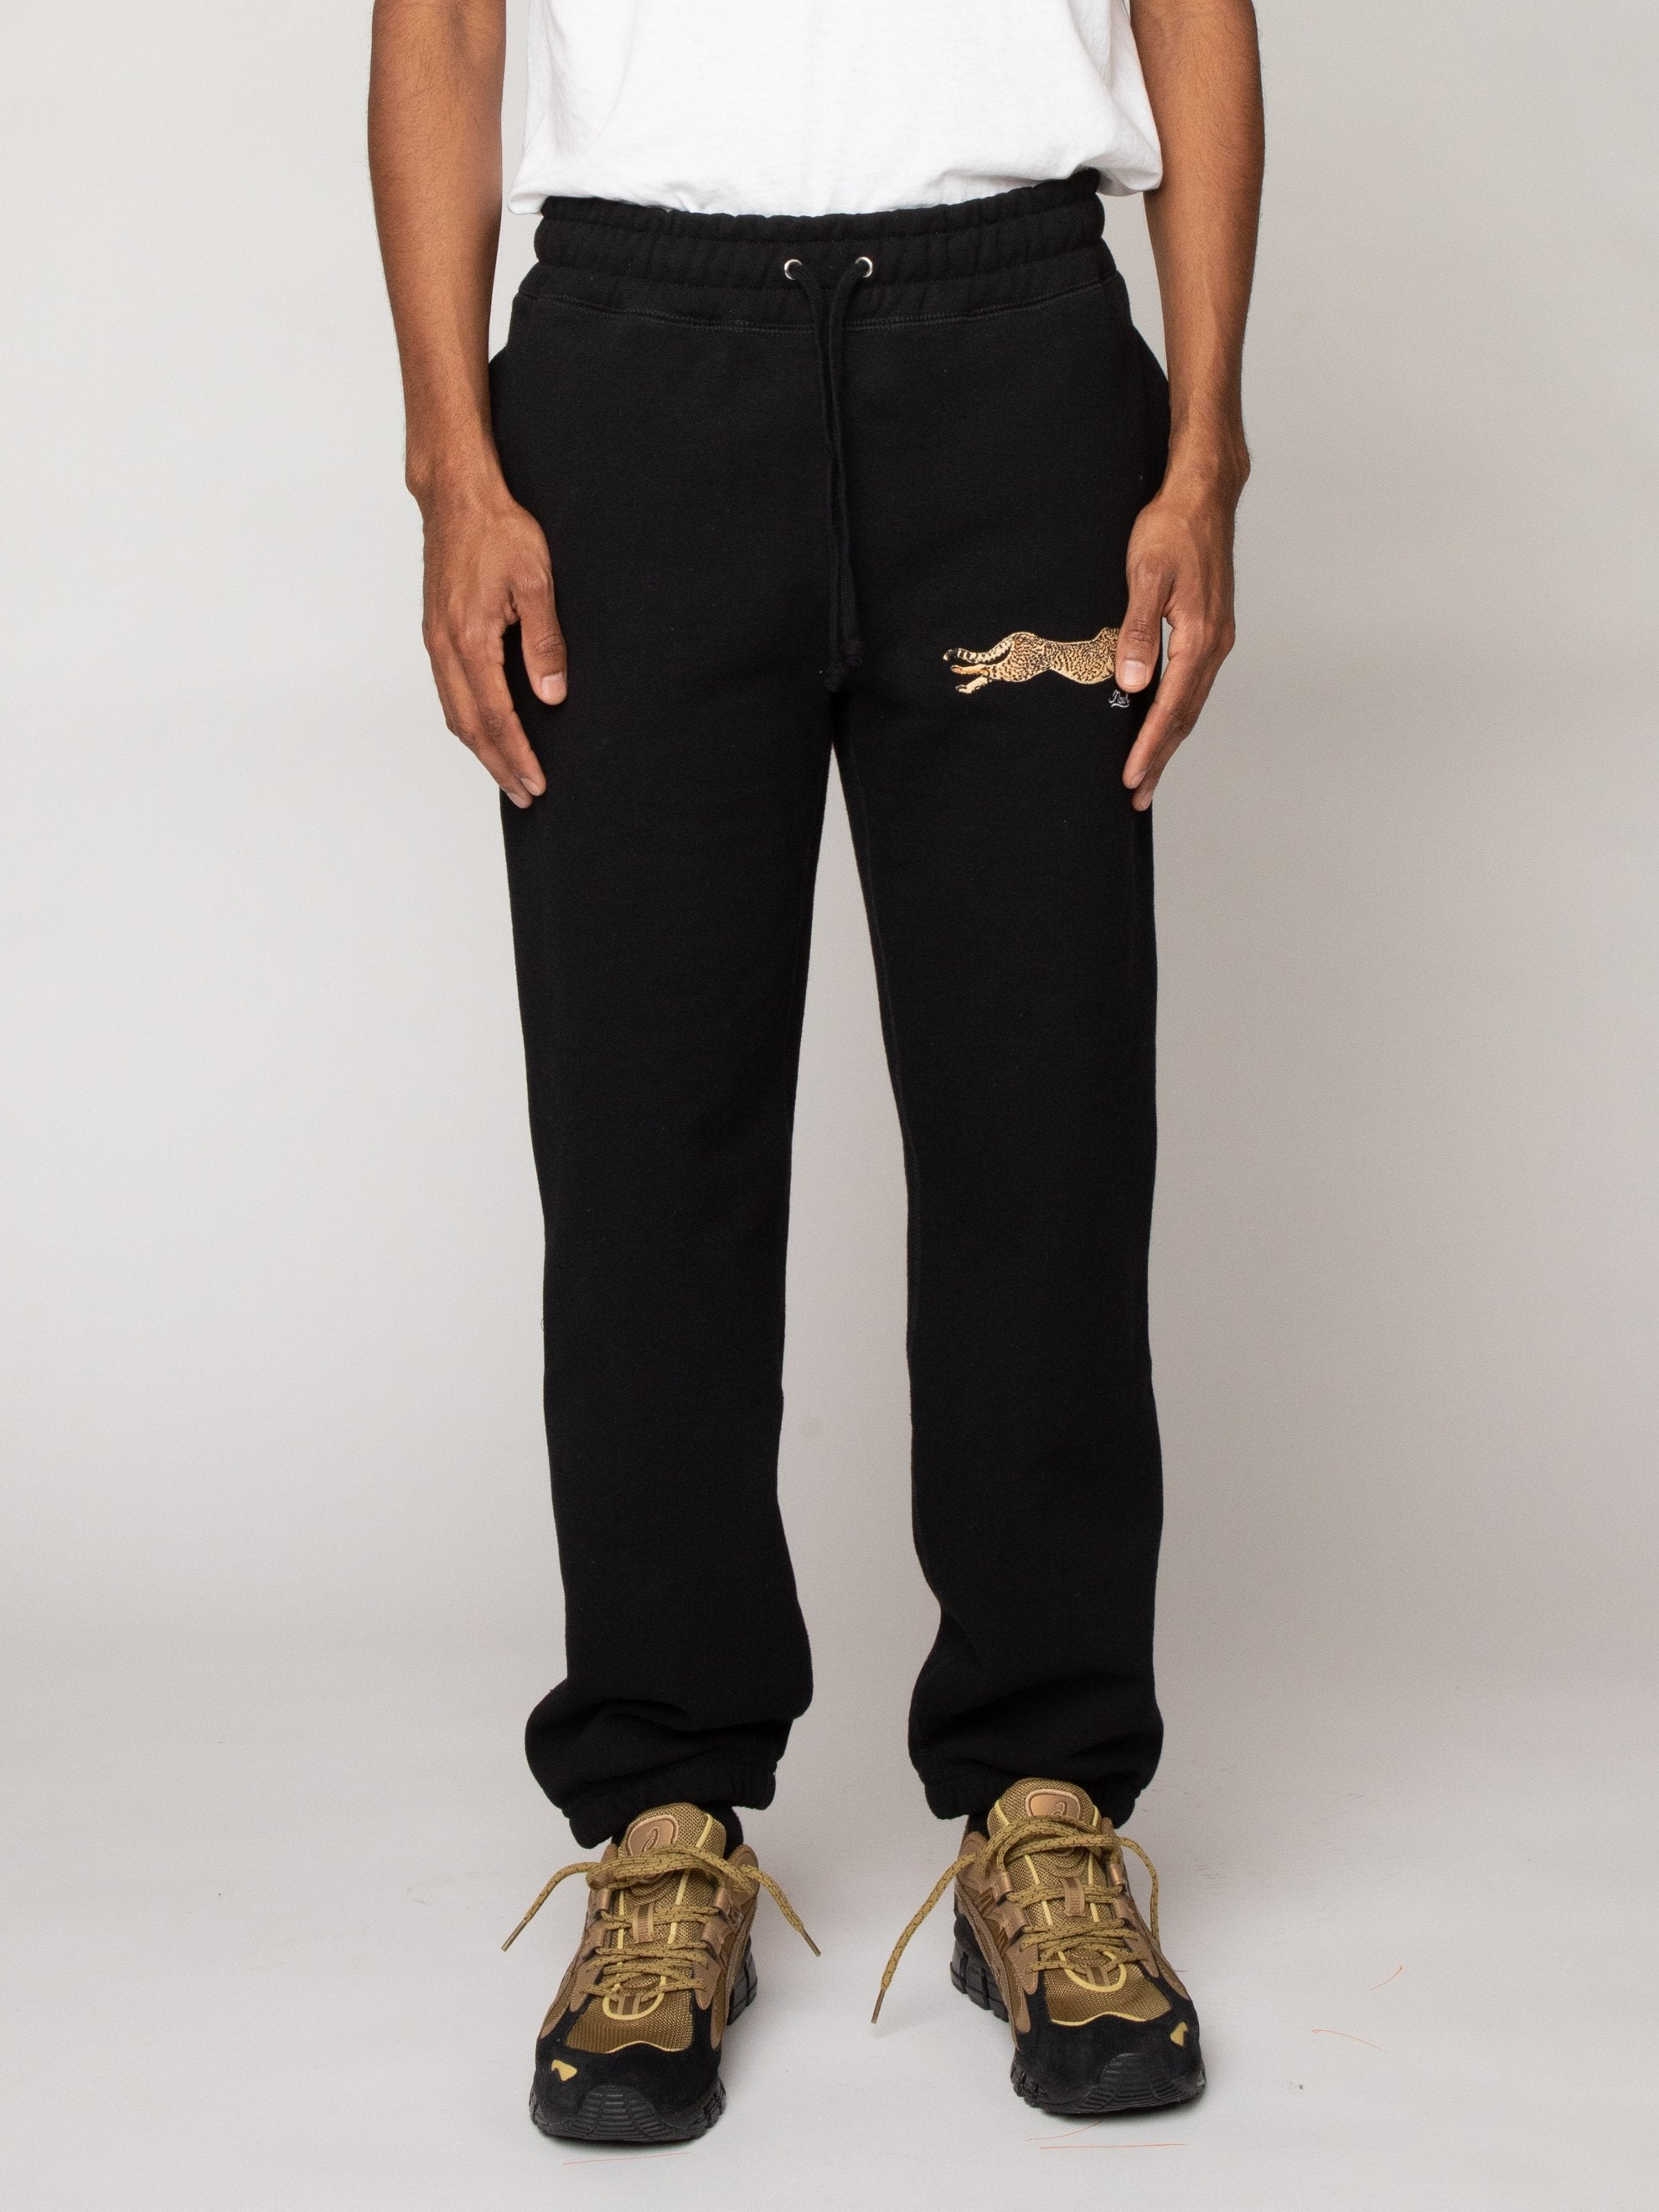 Black Cheetah Sweatpants 2